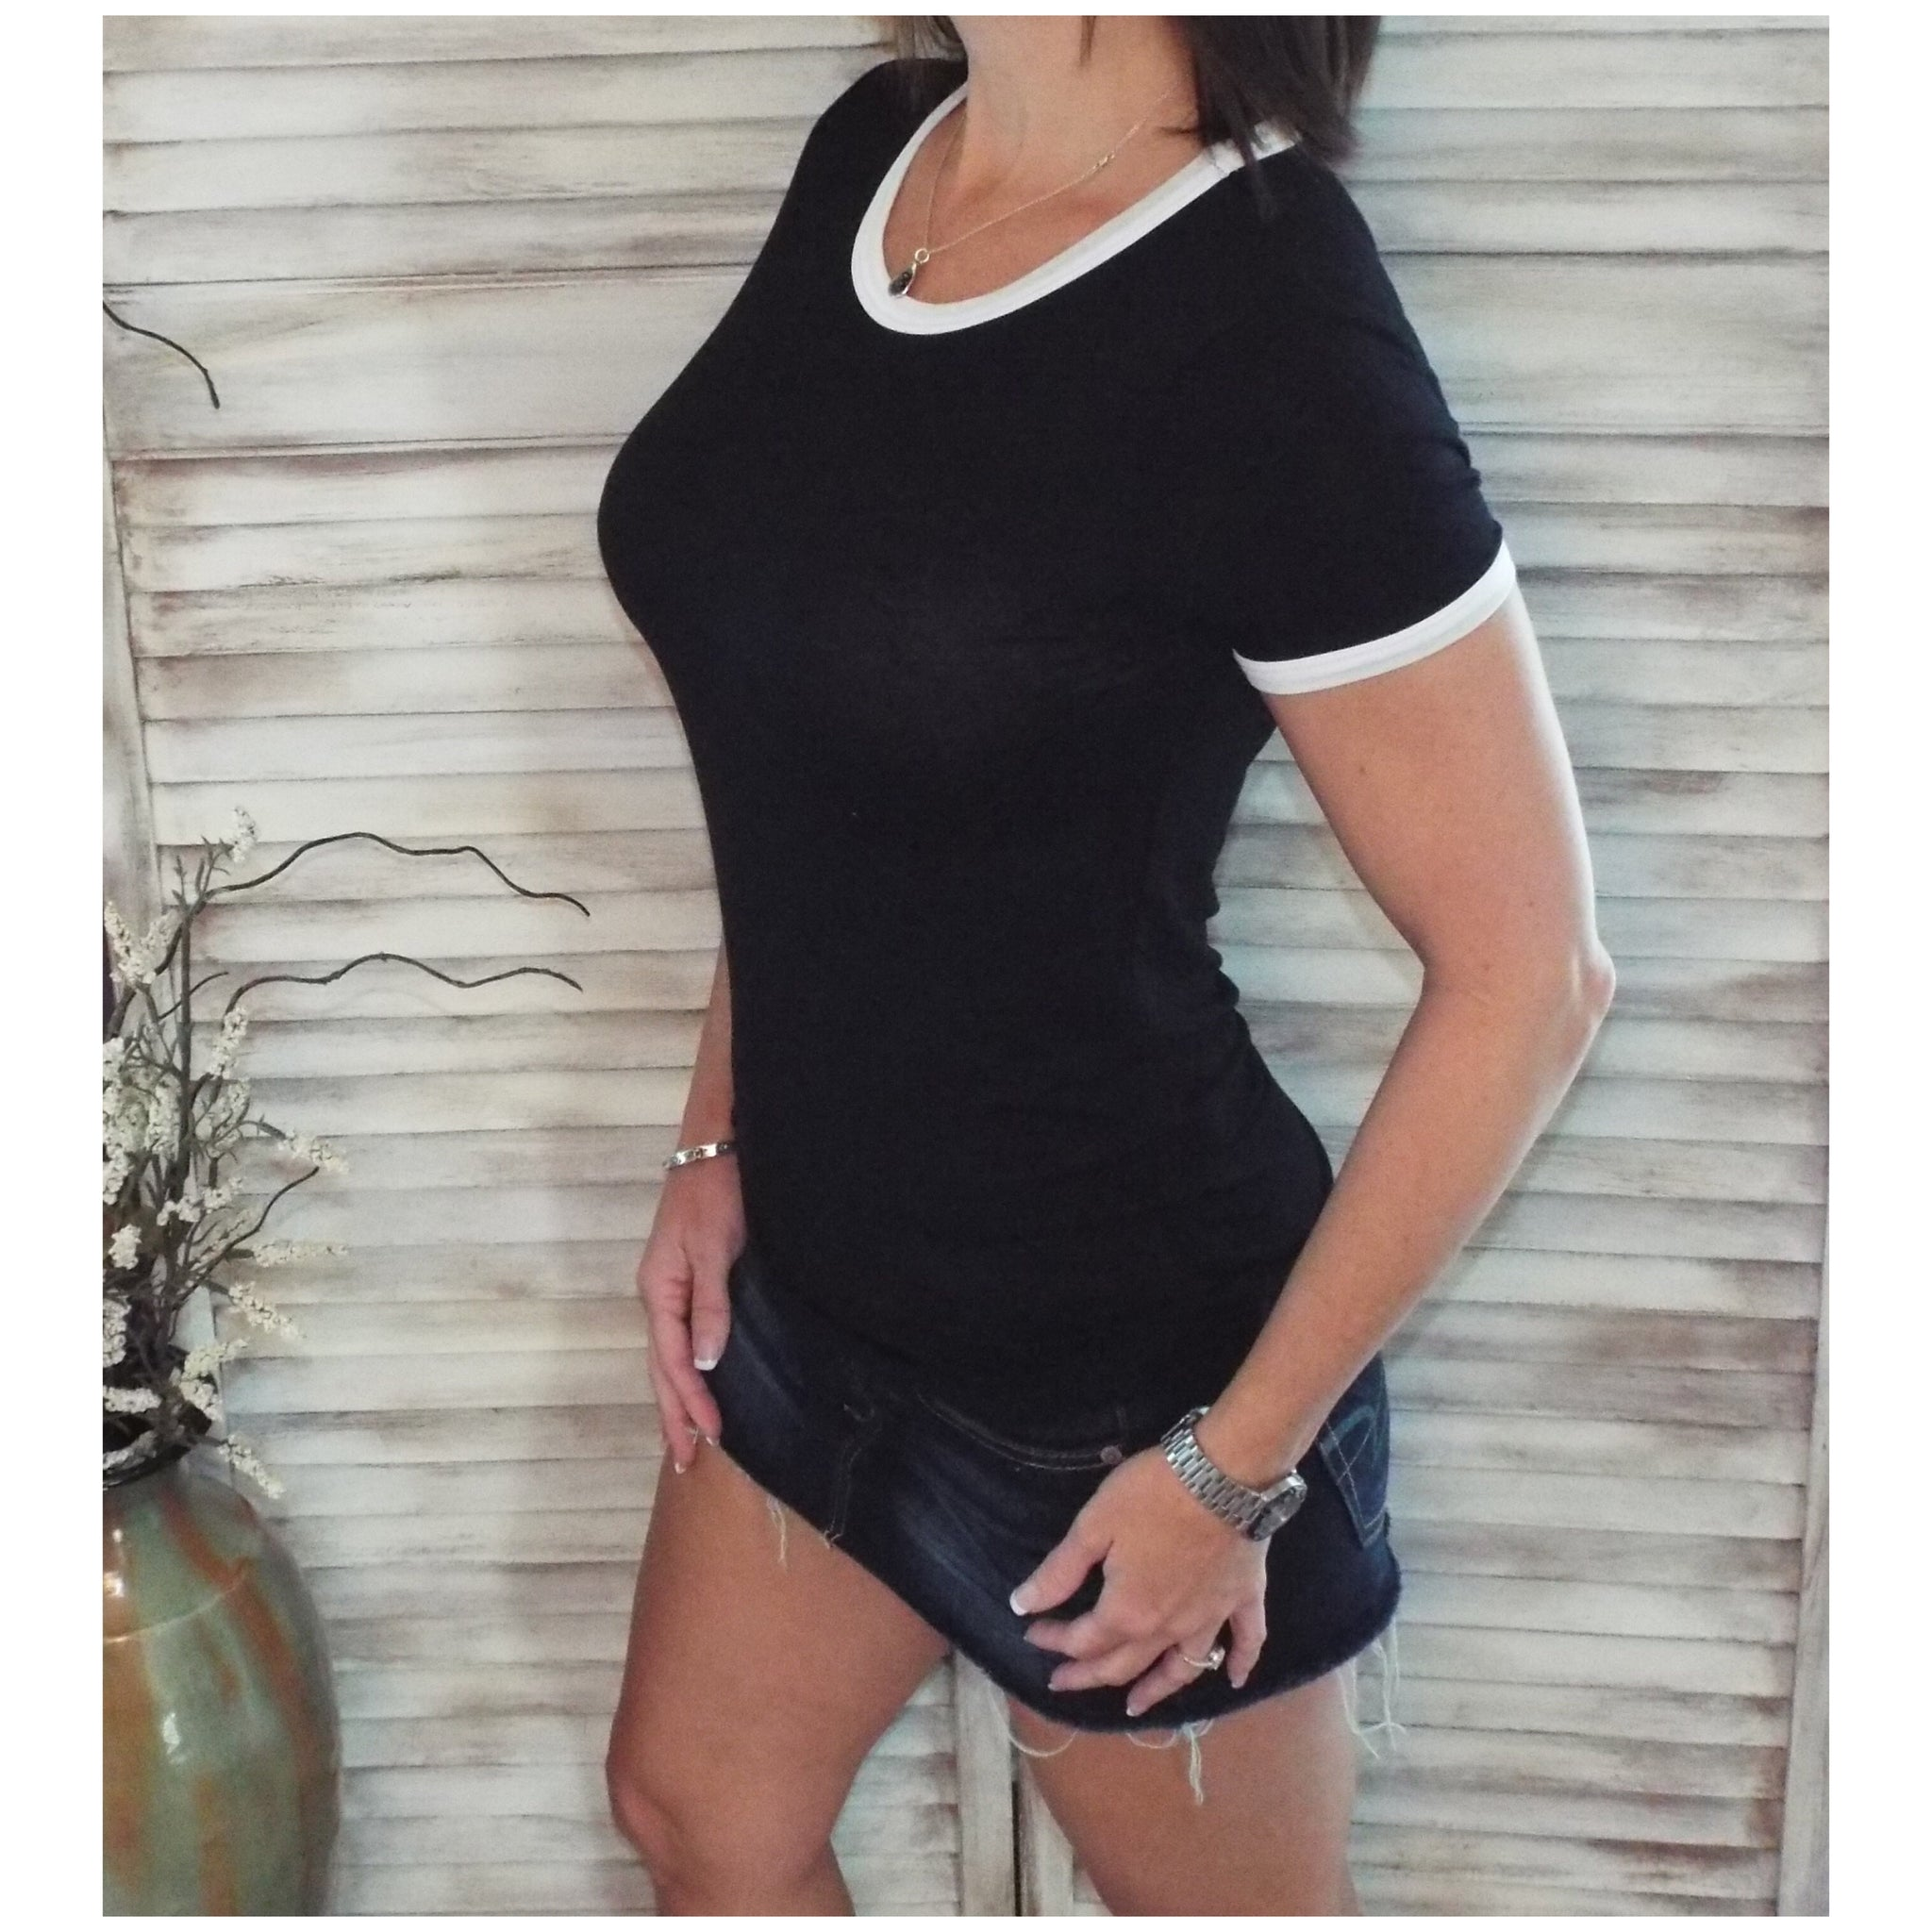 Very Sexy Crew Neck Baby Slimming Soft Top Tee Black Ivory Contrast Trim S/M/L